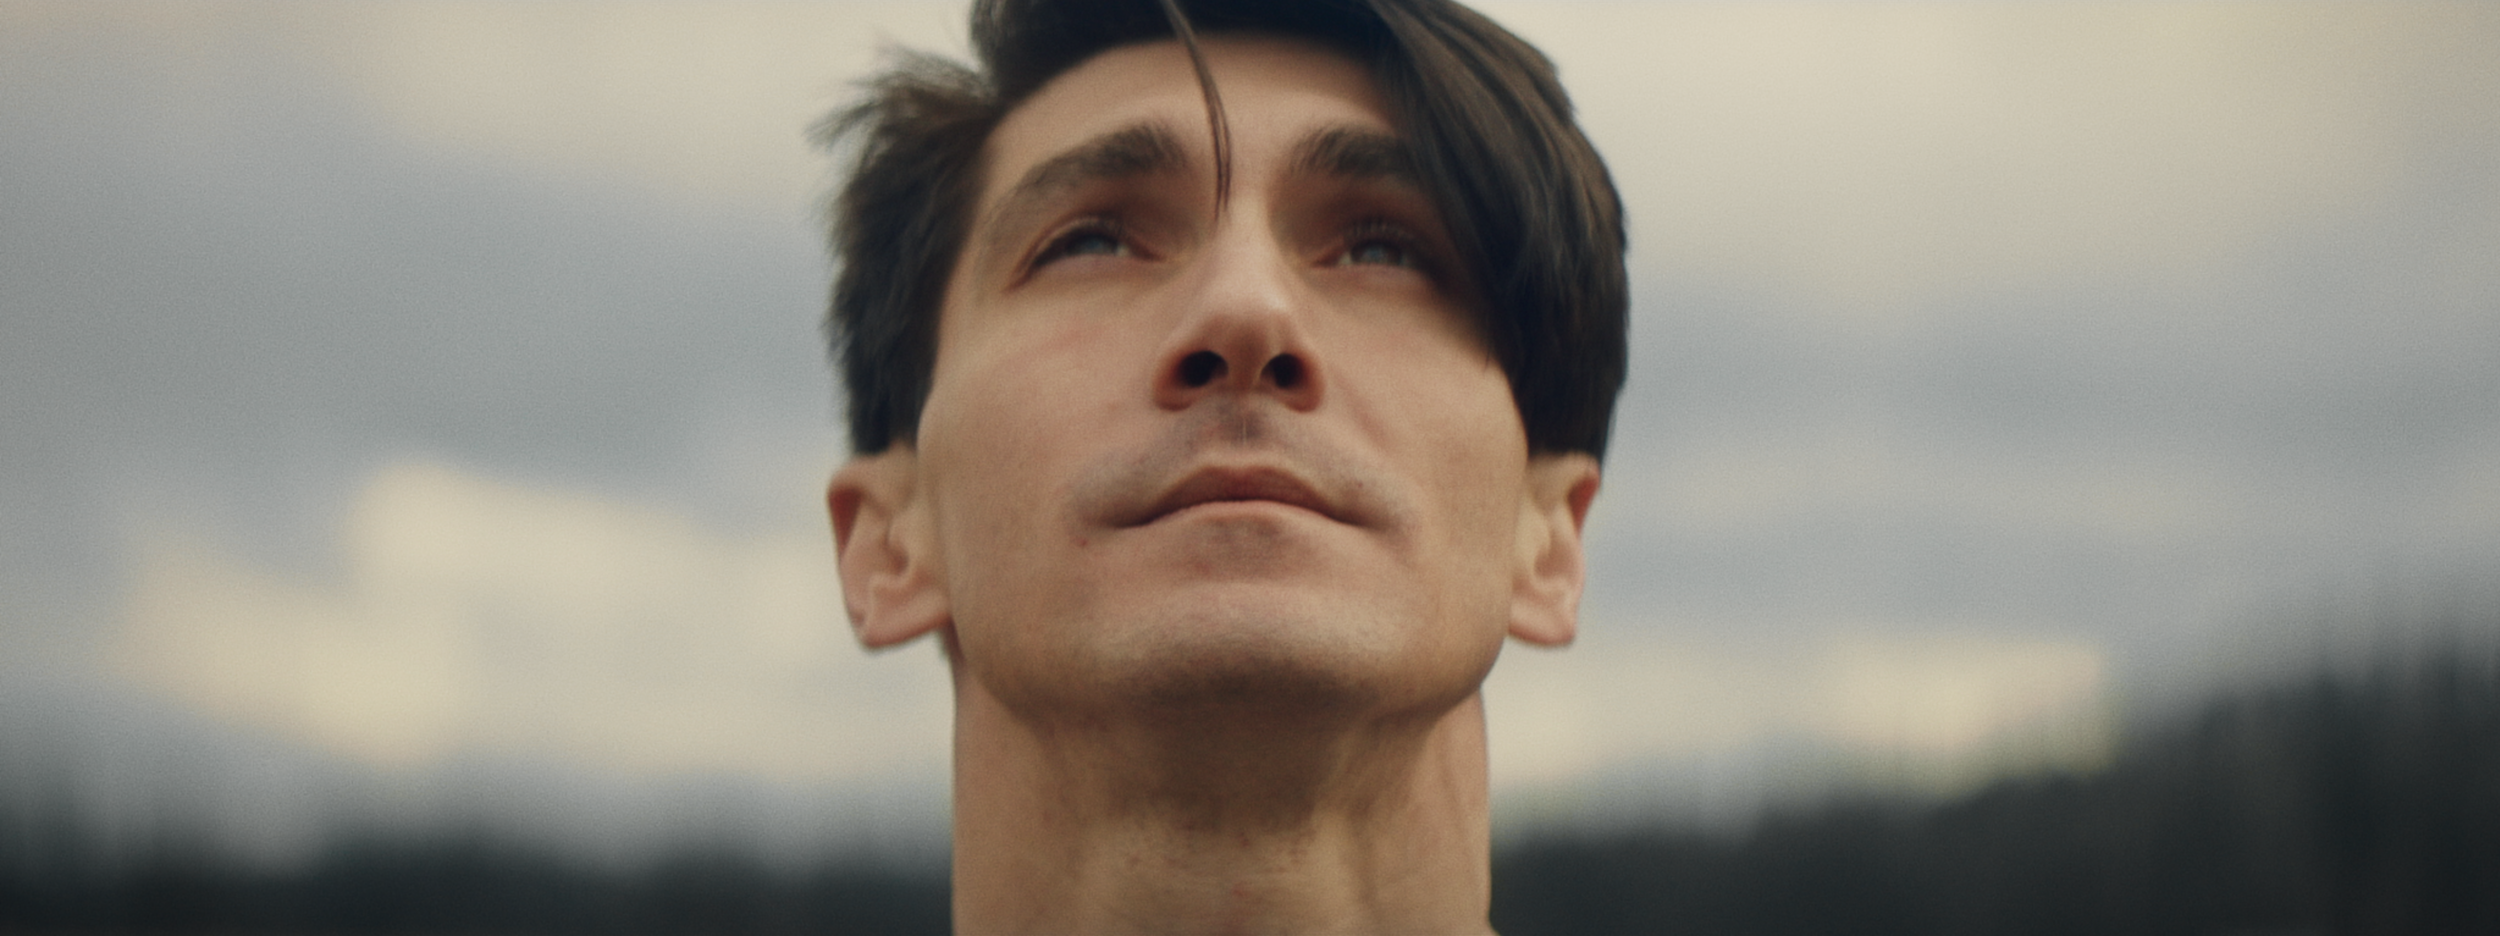 1703_CTRP_MASTER-COLOR-01_mov 61.png